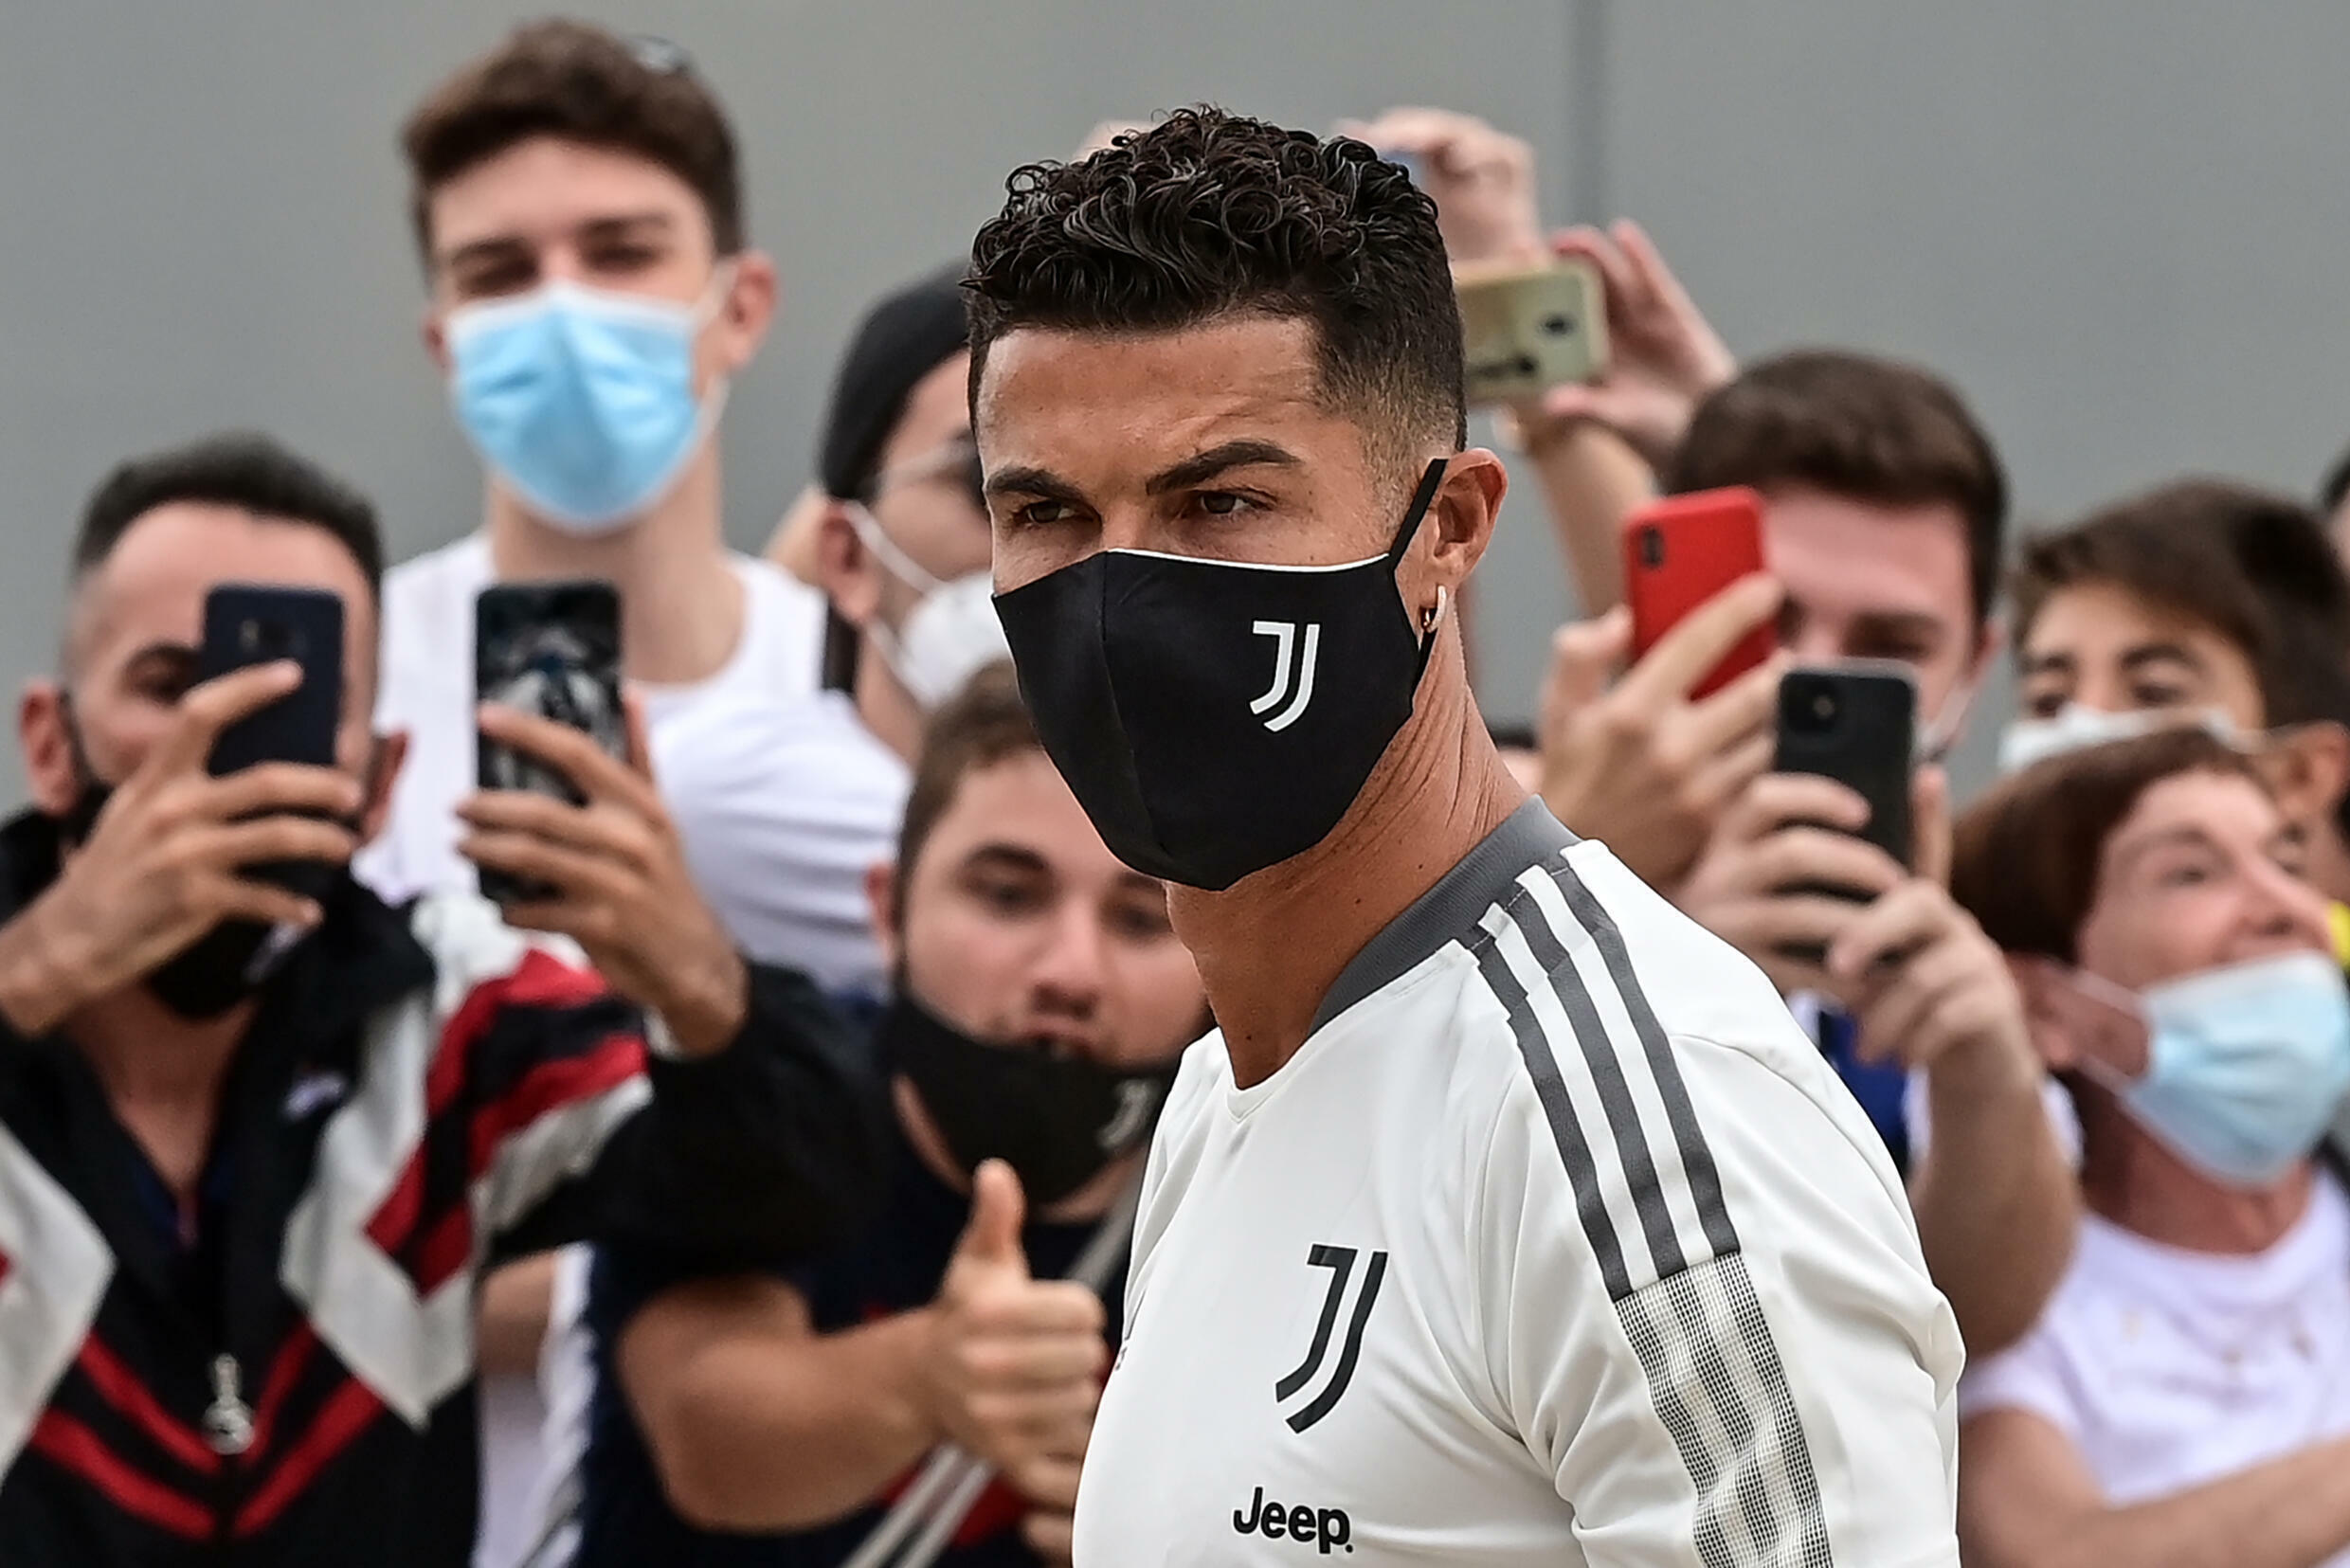 Juventus forward Cristiano Ronaldo is greeted by fans as he arrives for his medical examination at the Juventus medical center in Turin.